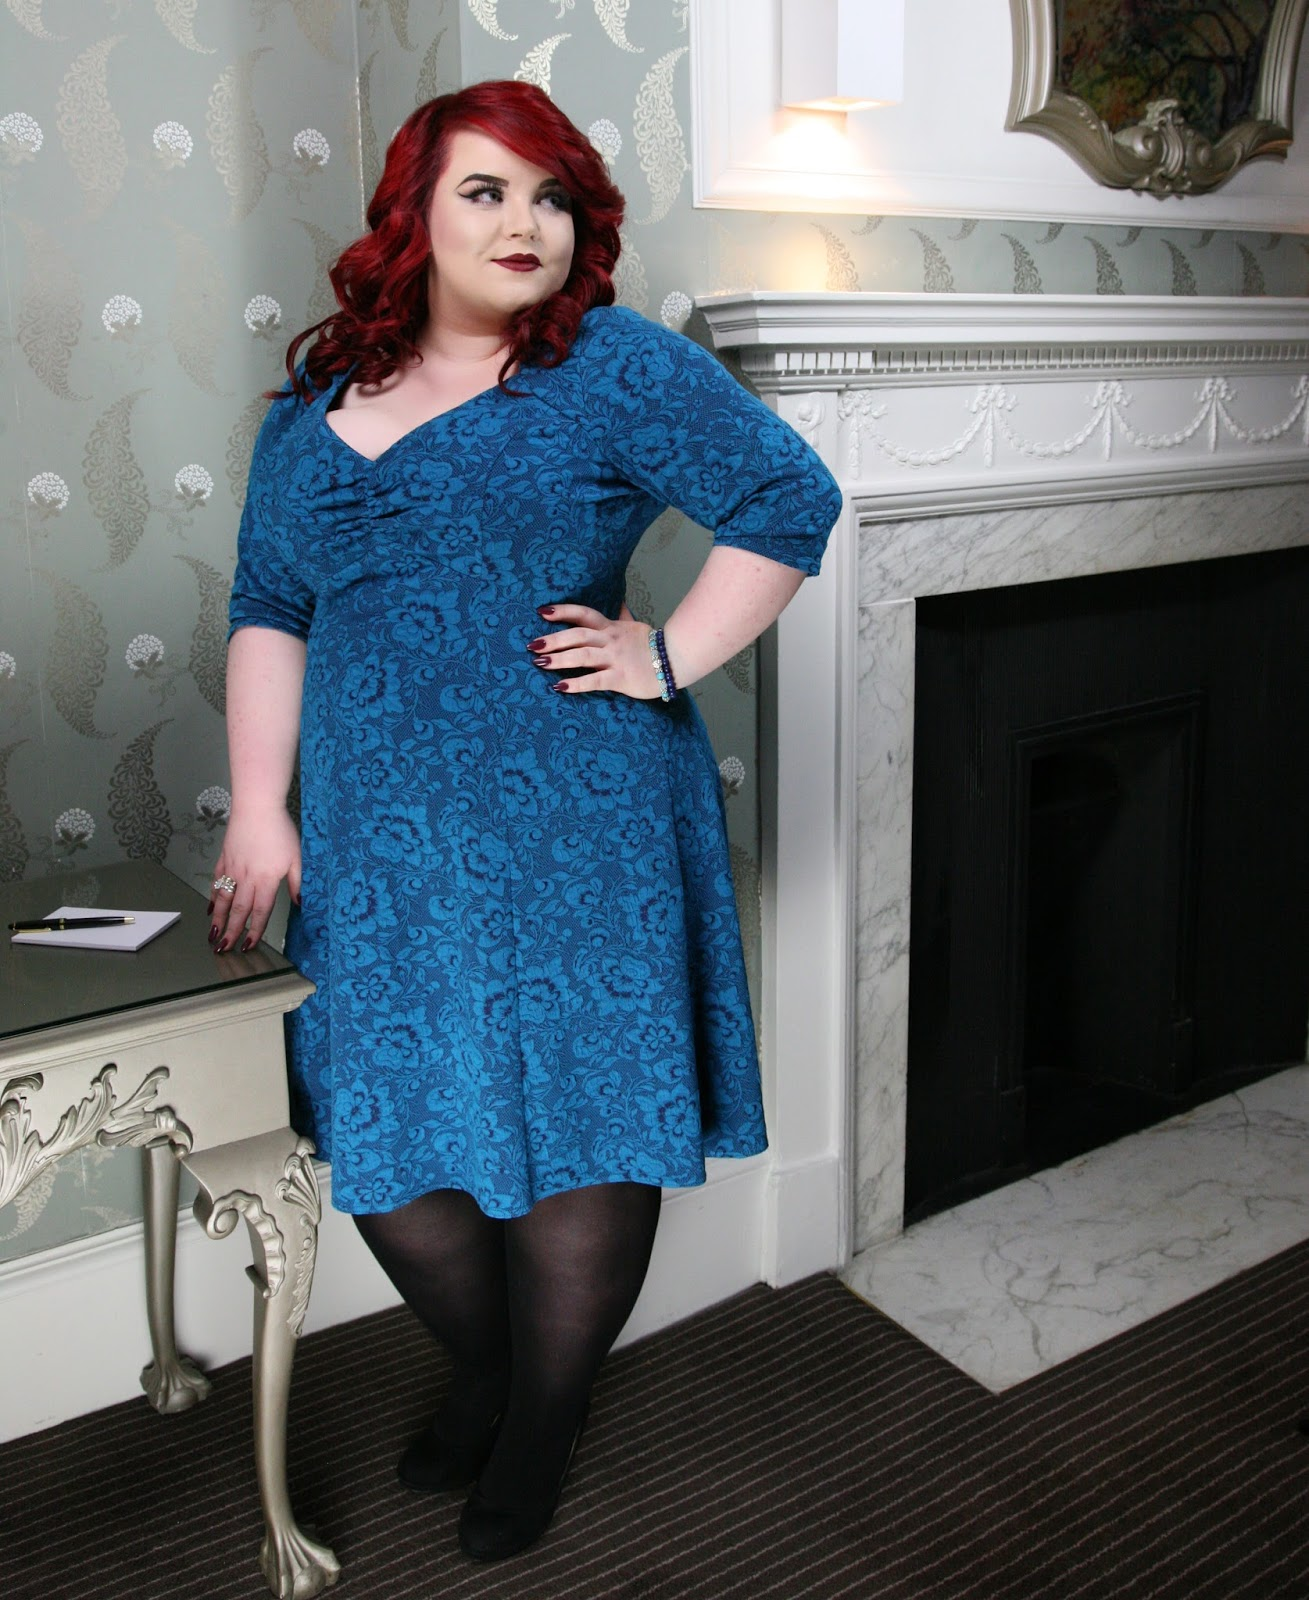 Charnos Xelence Plus Size Tights, scarlett & jo, georgina grogan, plus size blogger